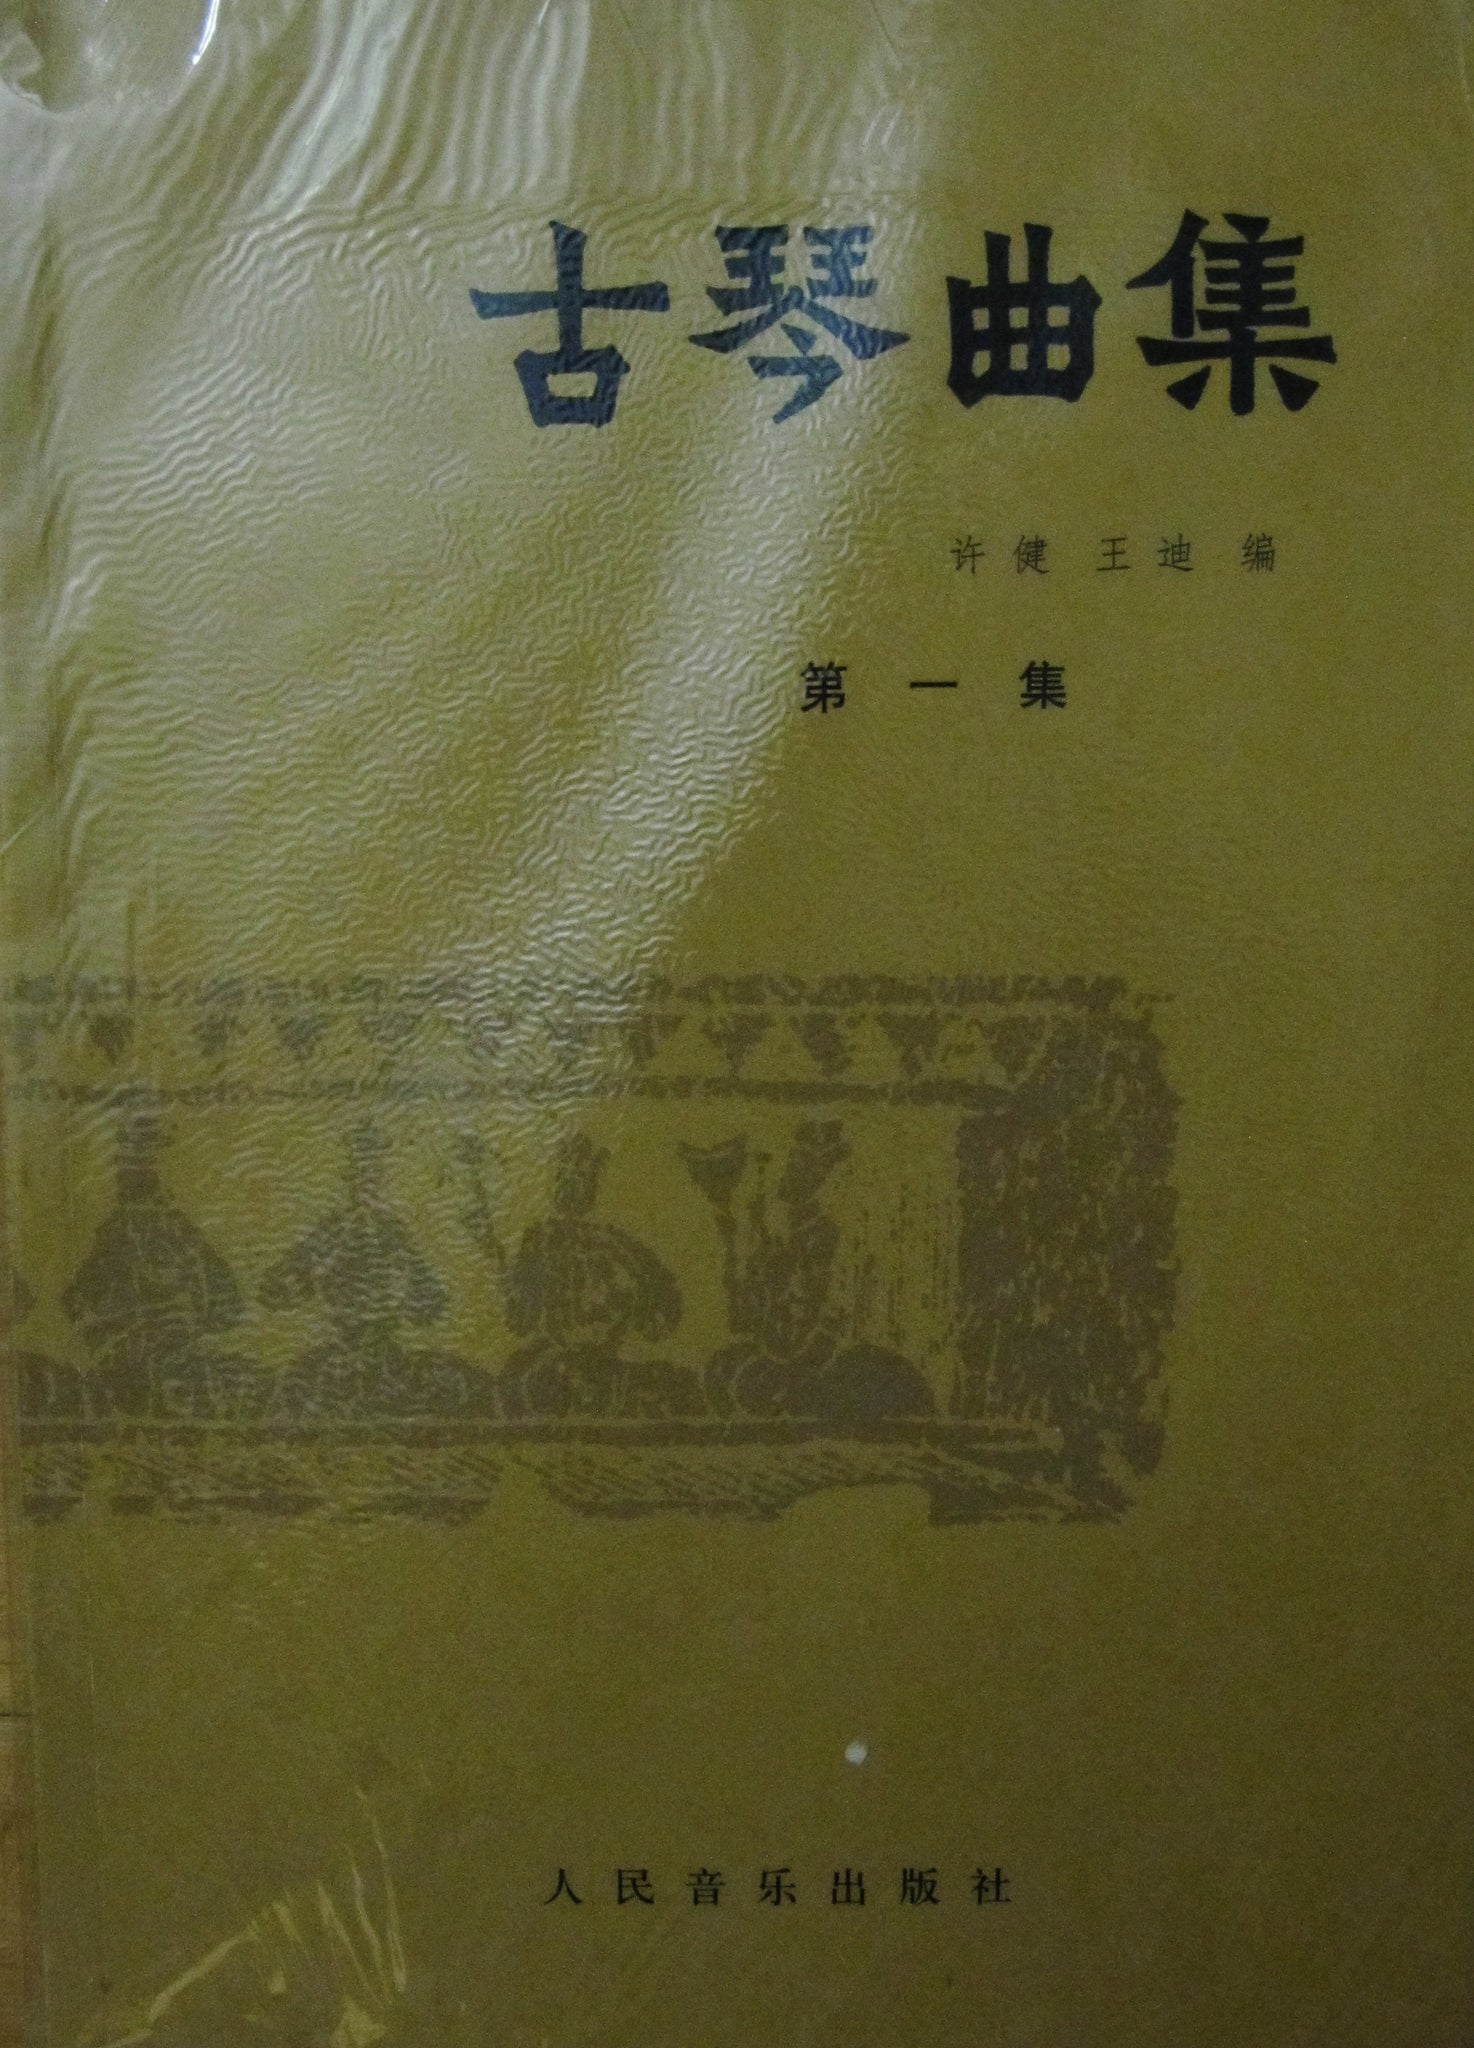 Guqin Music Book - a compilation of guqin compositions, books 1&2 古琴曲集 许健 王迪编 (1册+2册)